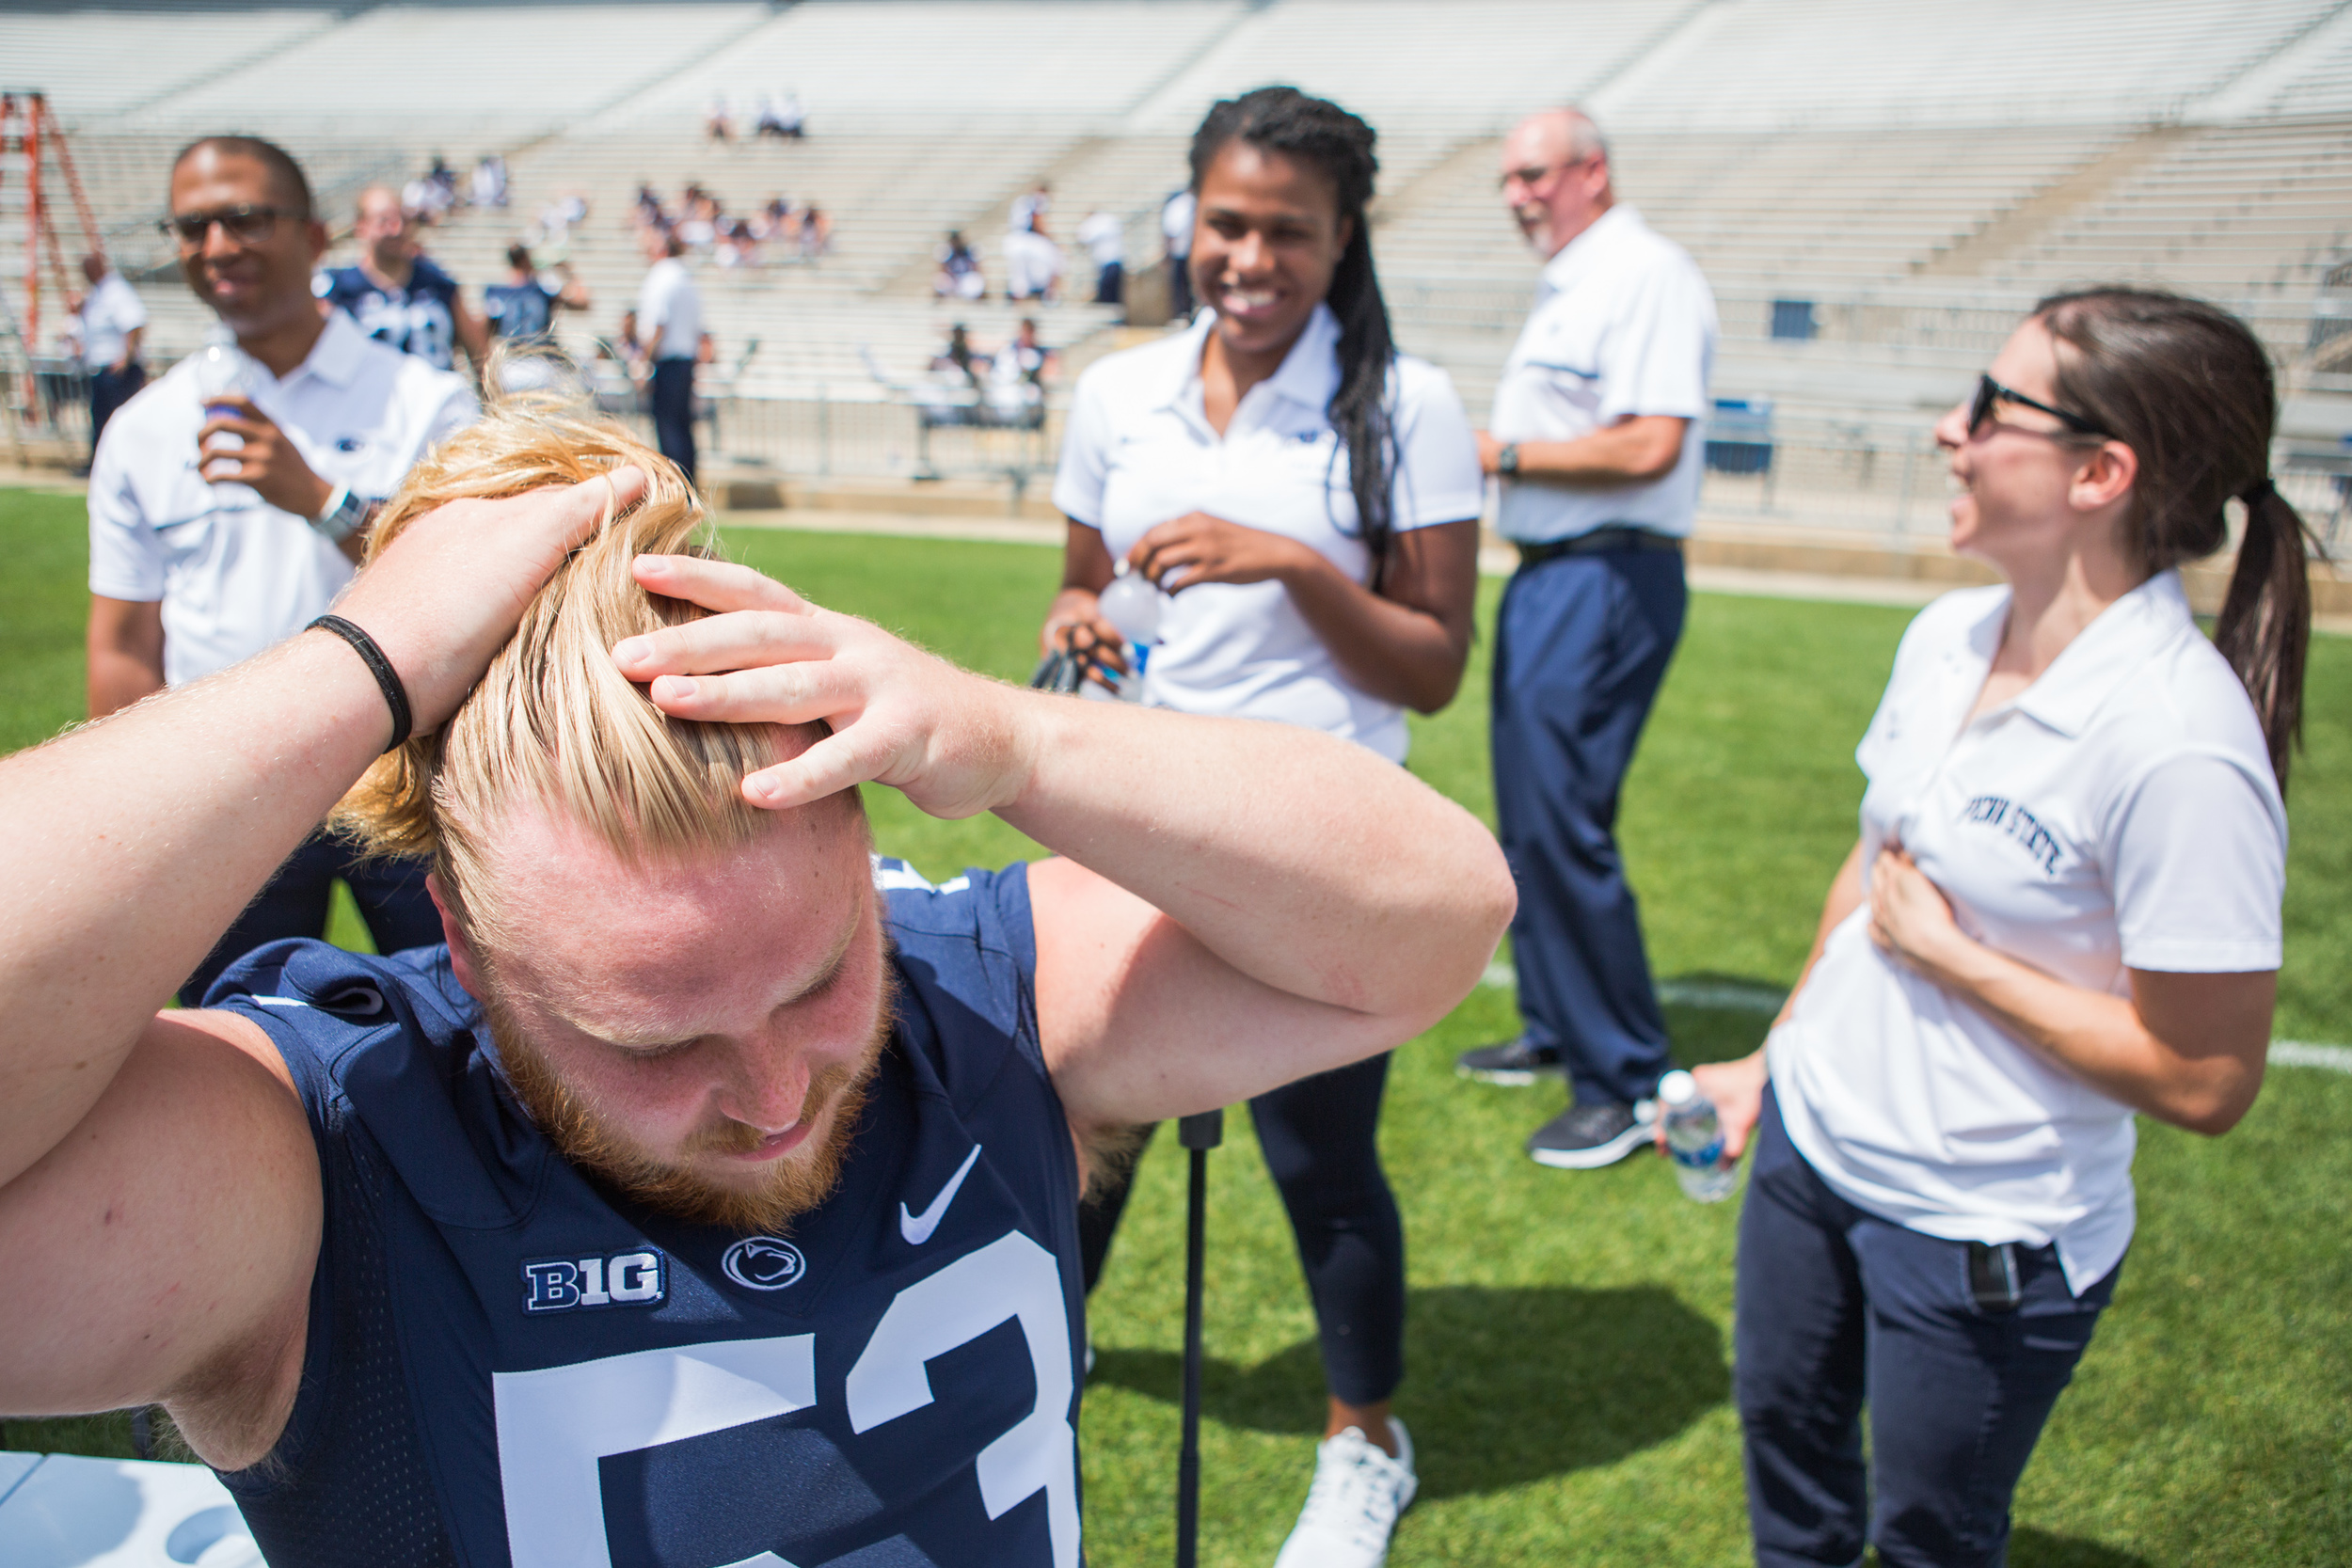 Graduate student Derek Dowrey shows assistant learning specialist Chelsea Holmes, center, and assistant athletic trainer Madeleine Scaramuzzo, right, how he ties his hair into a bun during the football team's photo day on the field of Beaver Stadium on Sunday, Aug. 7, 2016.